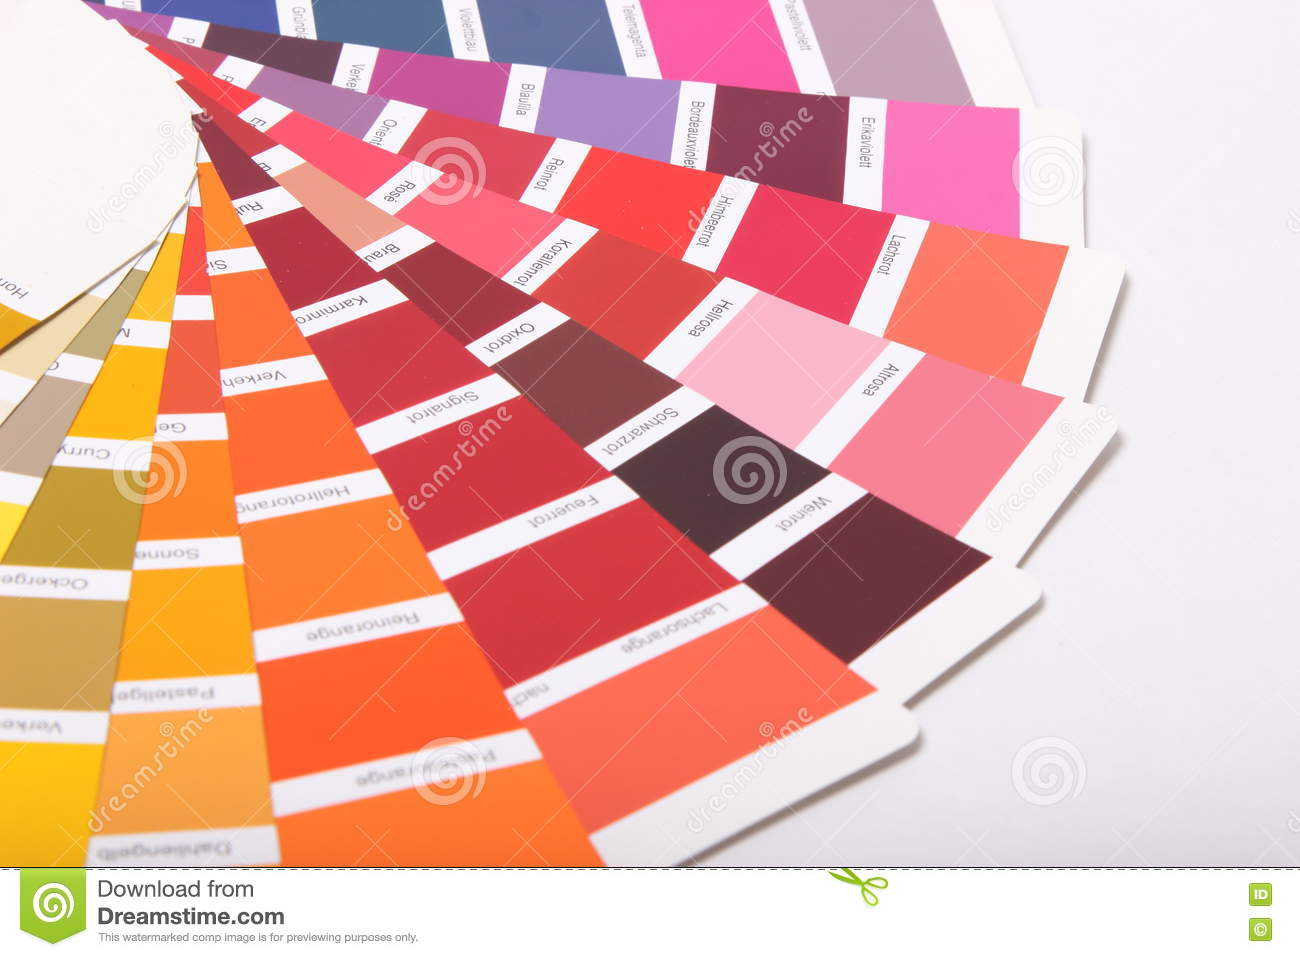 Ral Cmyk Ral Colours On White Background Stock Image Image Of Cmyk Guide